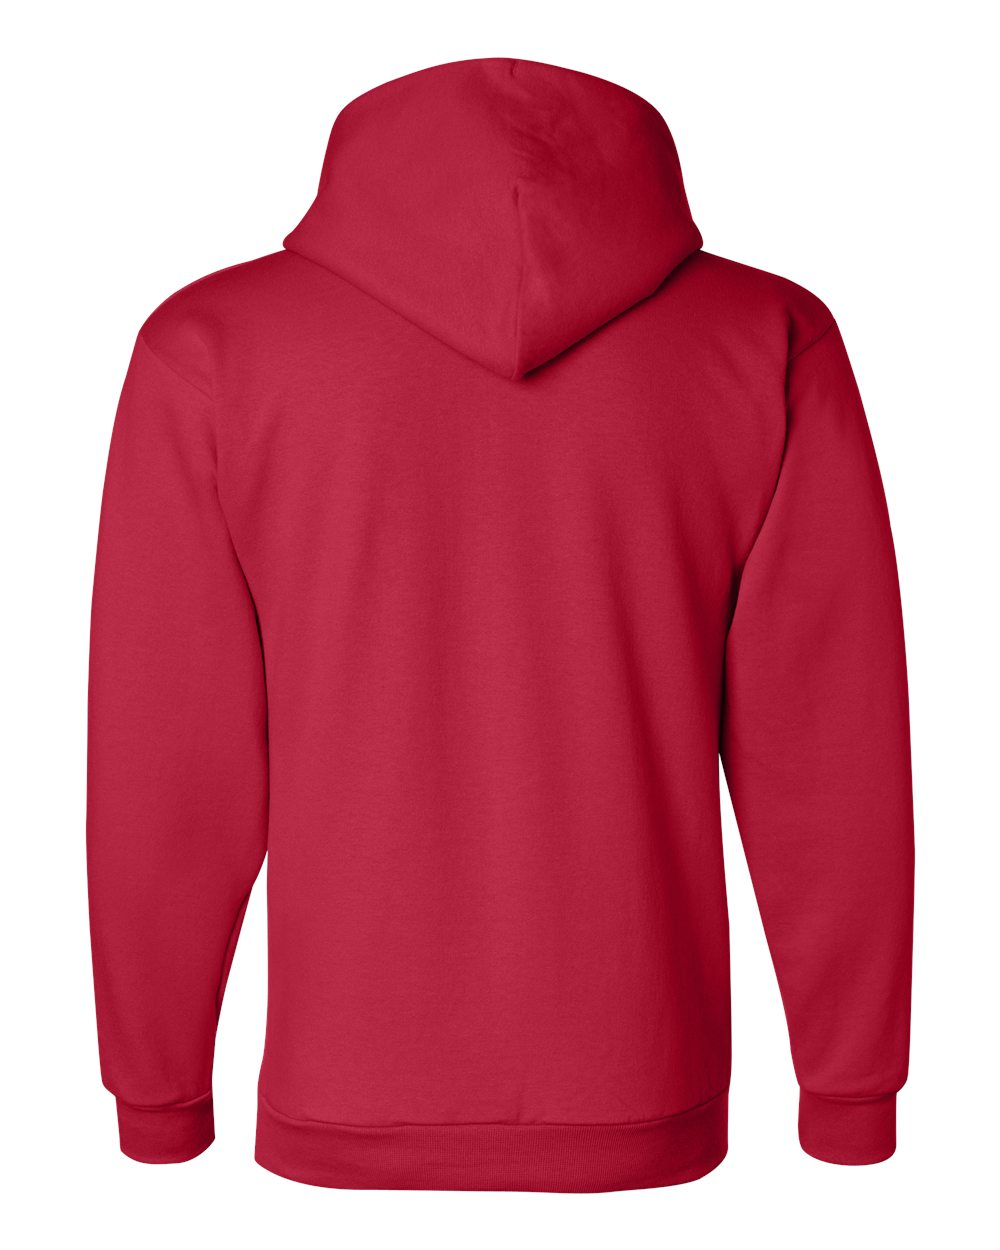 Champion-Mens-Double-Dry-Eco-Hooded-Sweatshirt-Hoodie-Pullover-S700-up-to-3XL miniature 40